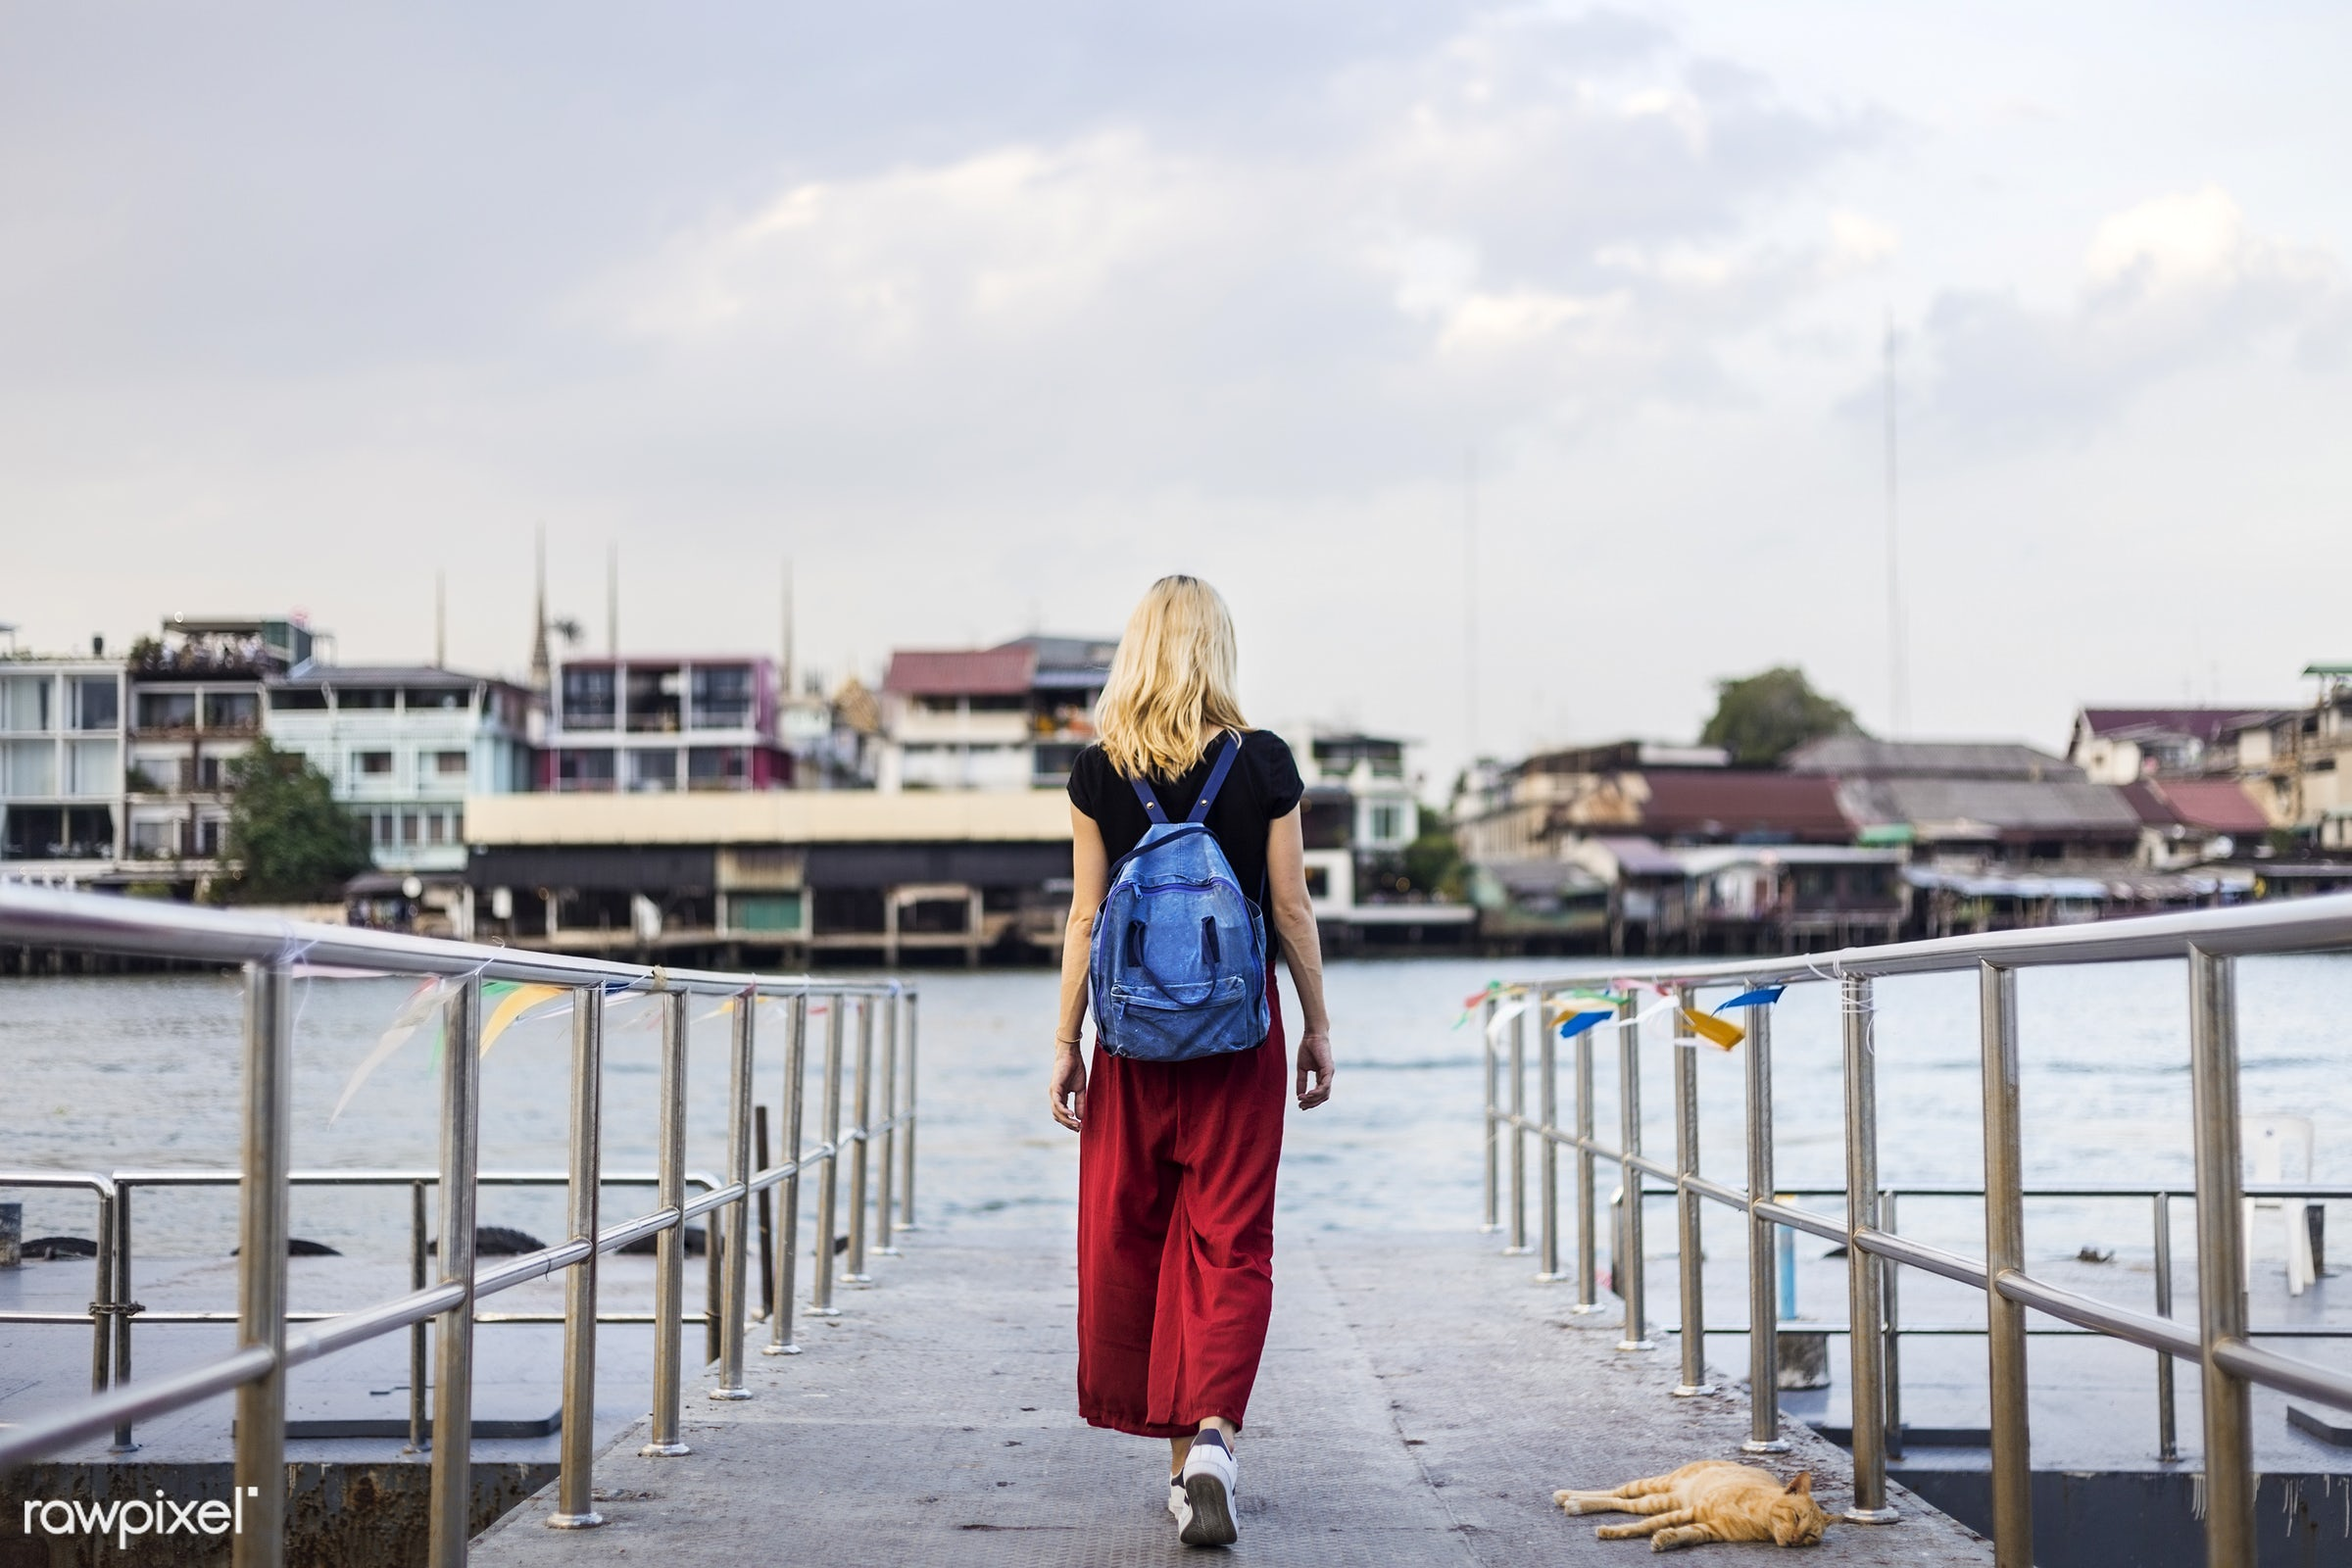 woman, adult, alone, back, bag, blonde, dock, explore, female, one, outdoors, people, person, river, riverside, solo, sweden...